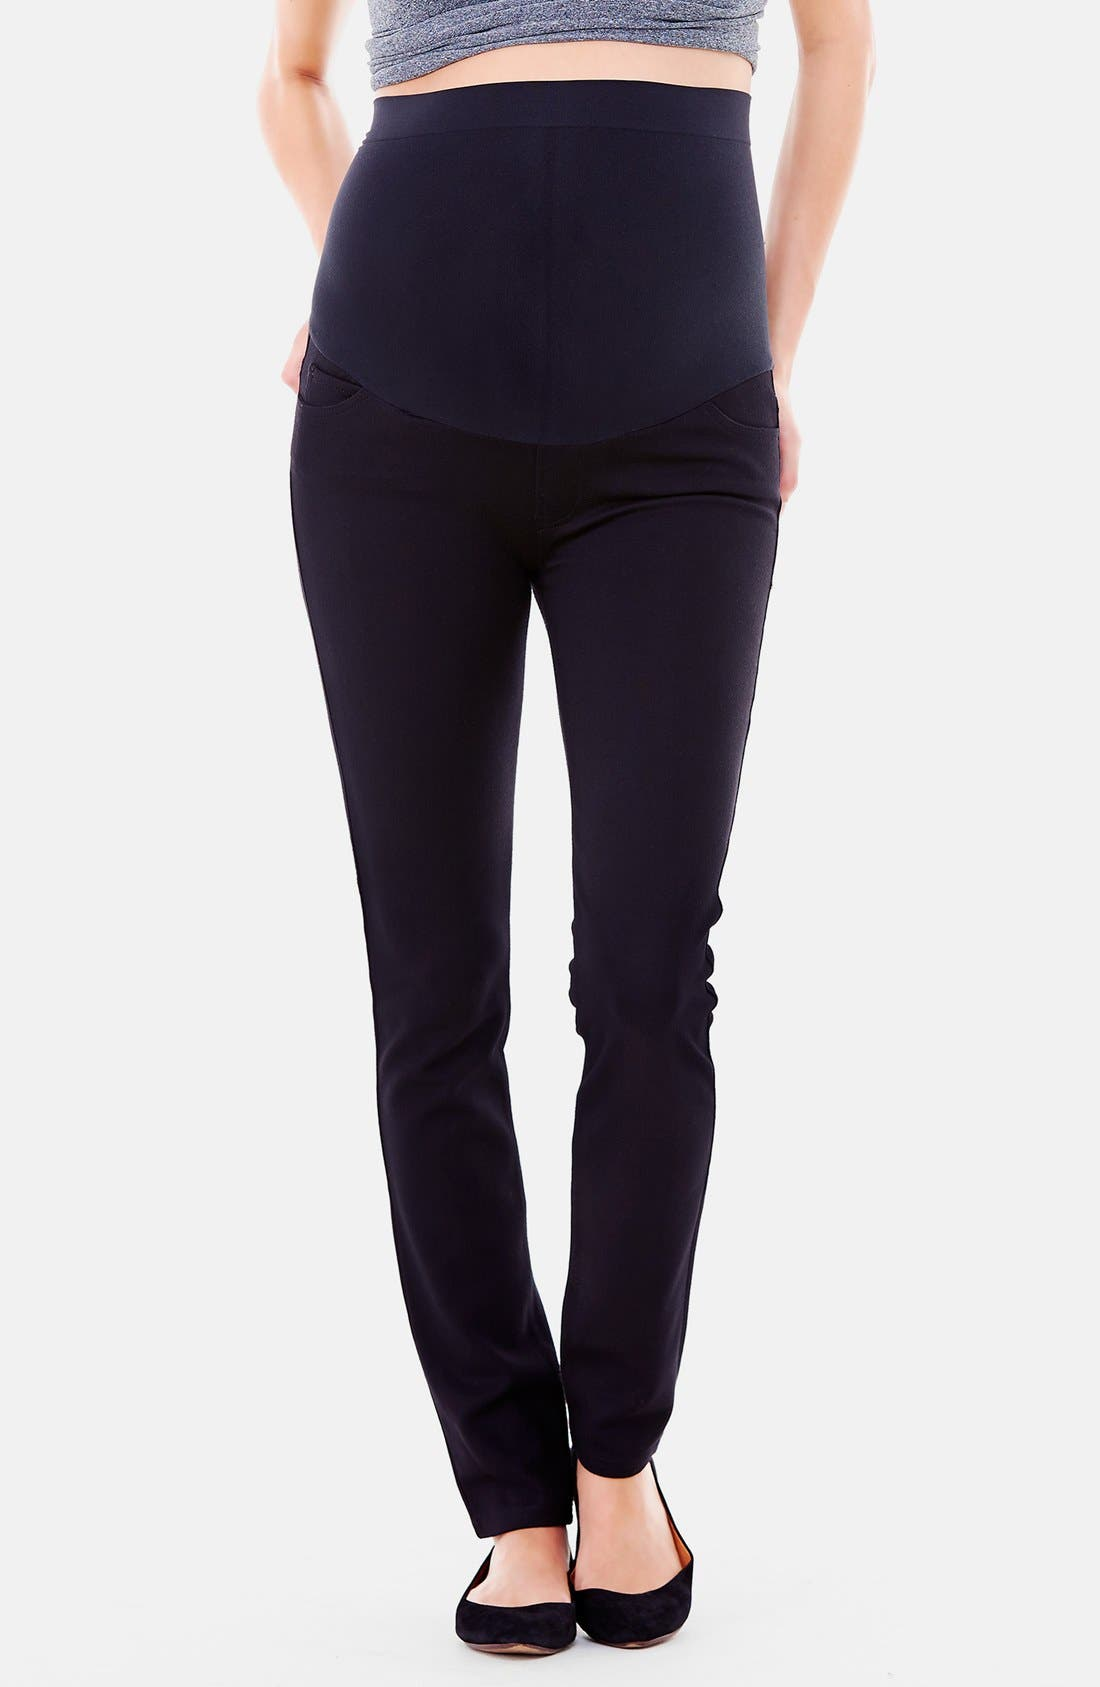 Main Image - Ingrid & Isabel® Ponte Knit Skinny Maternity Pants